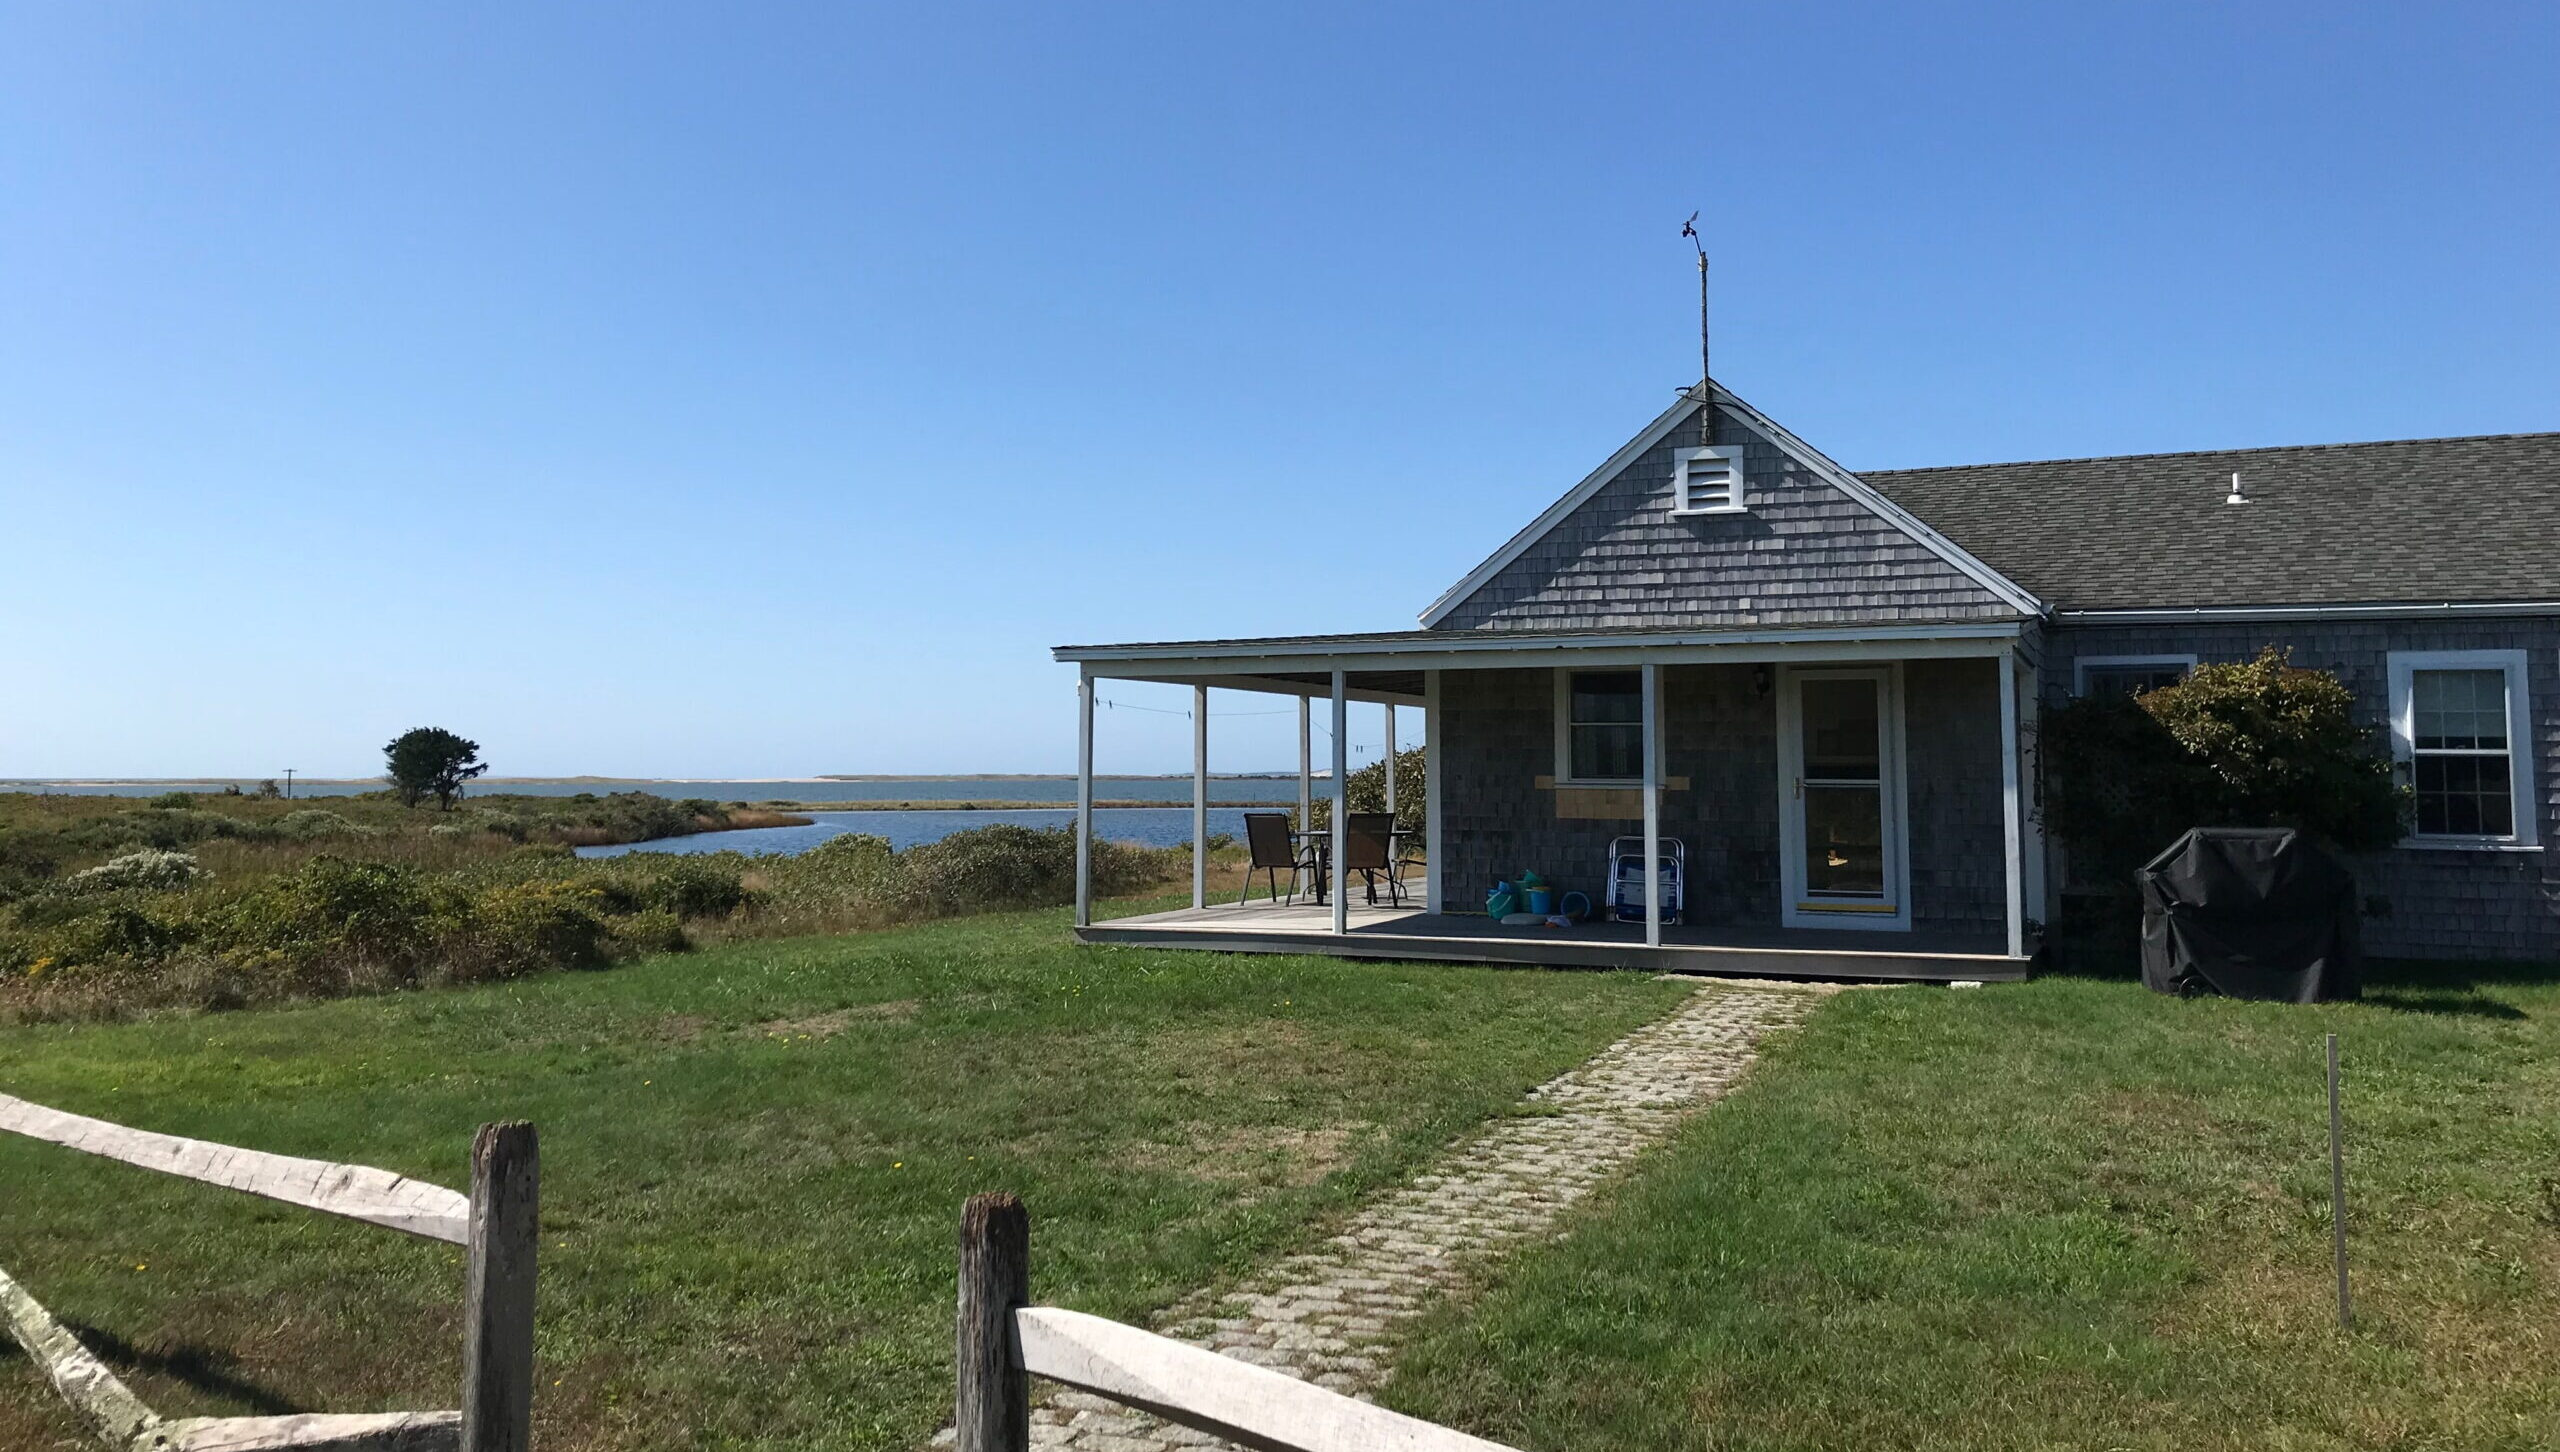 Long Point Beach Cottage, with view of water in the background, scaled